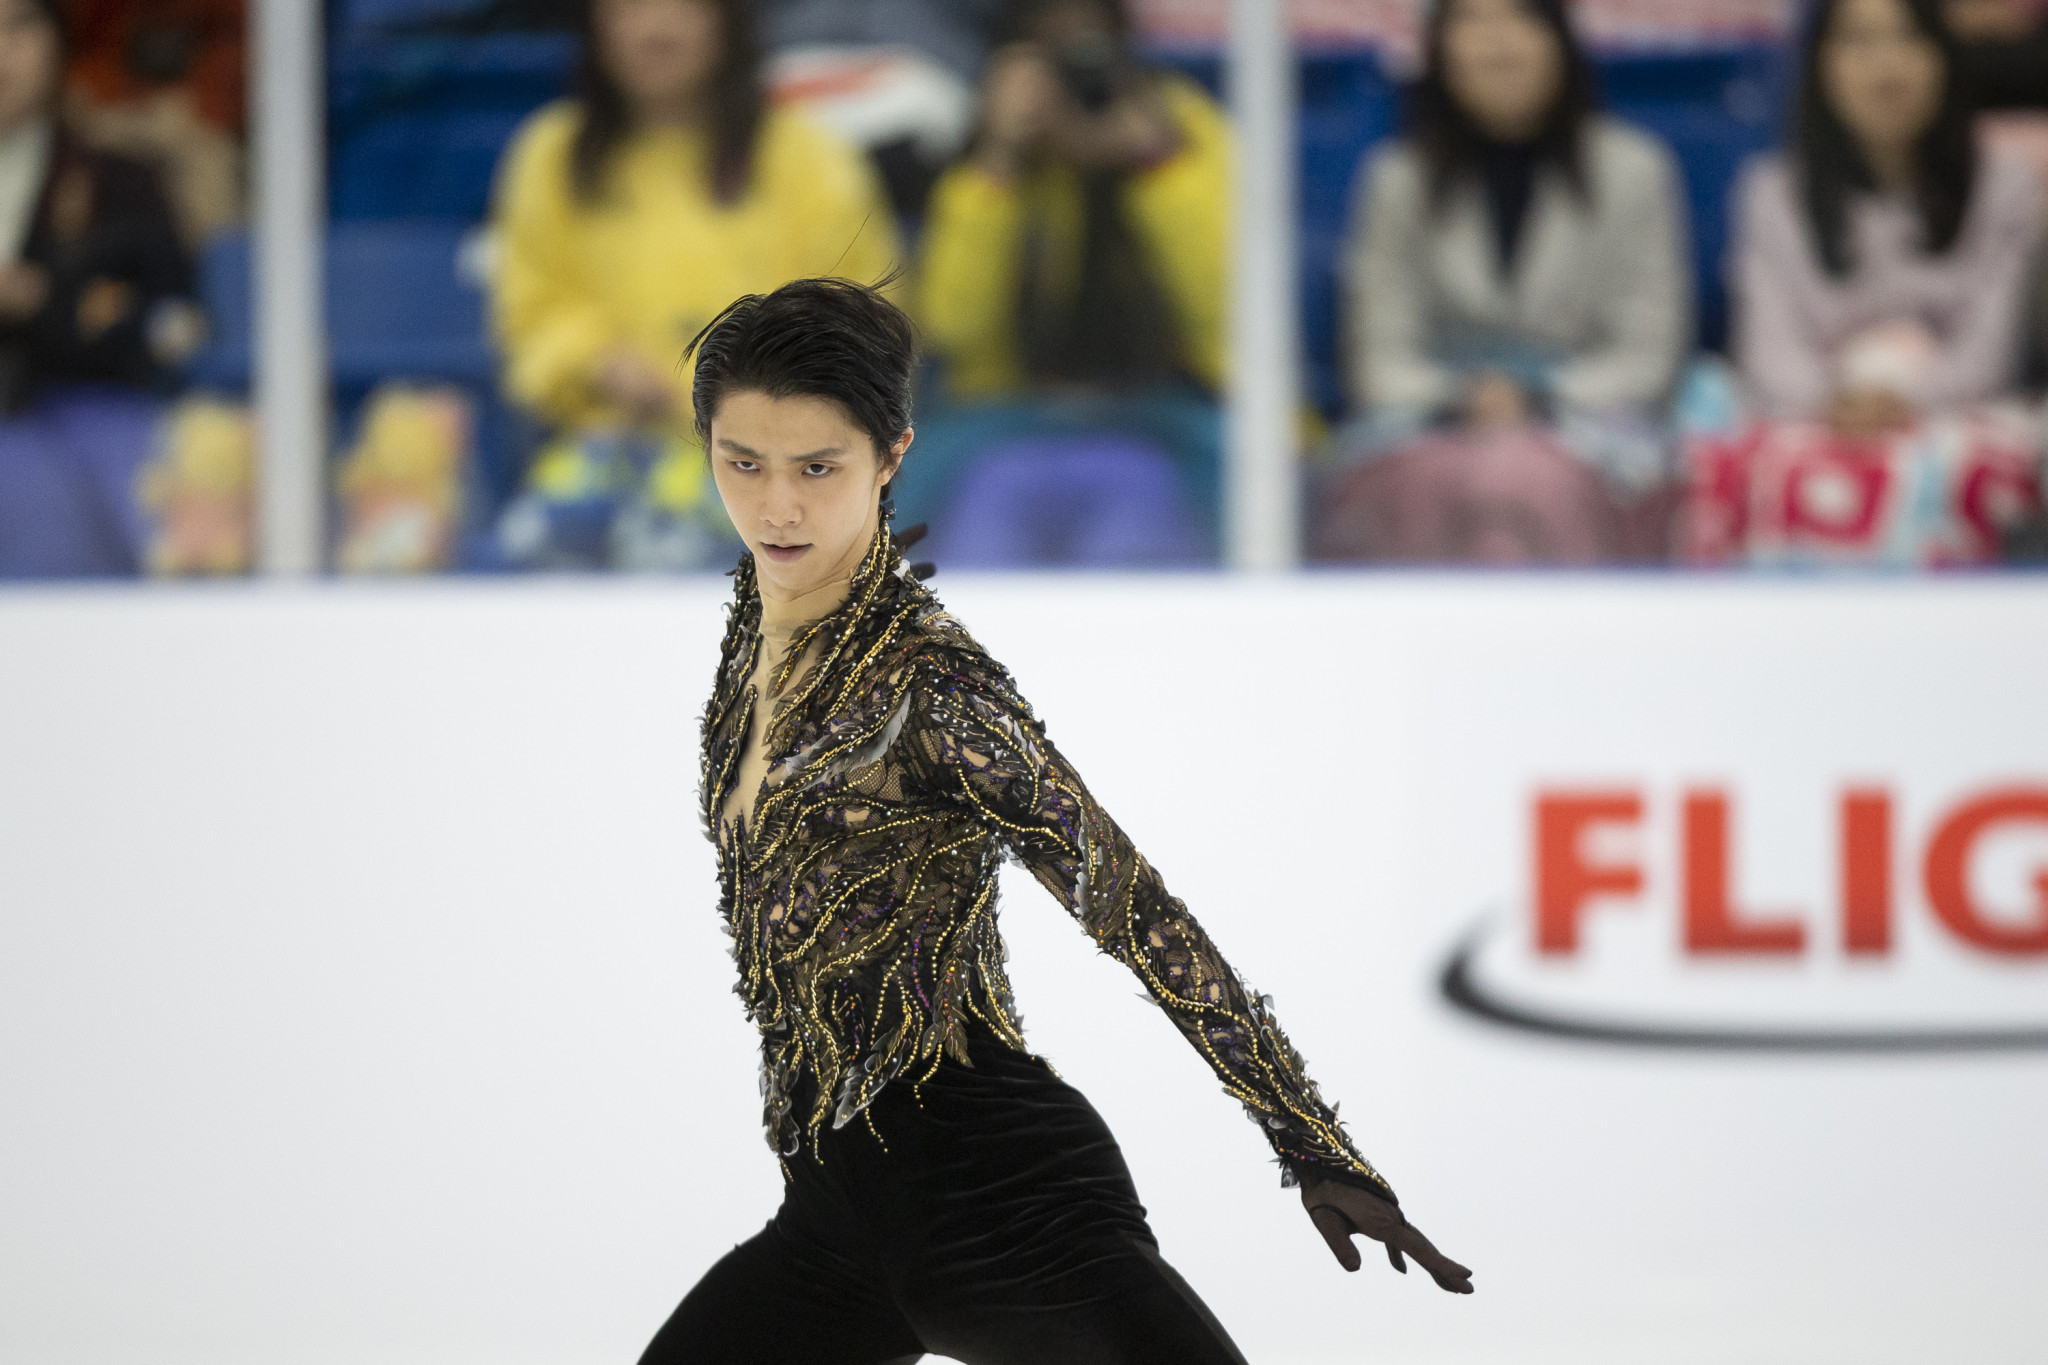 Yuzuru Hanyu was forced to recover from an ankle injury following the Winter Olympics ©Getty Images